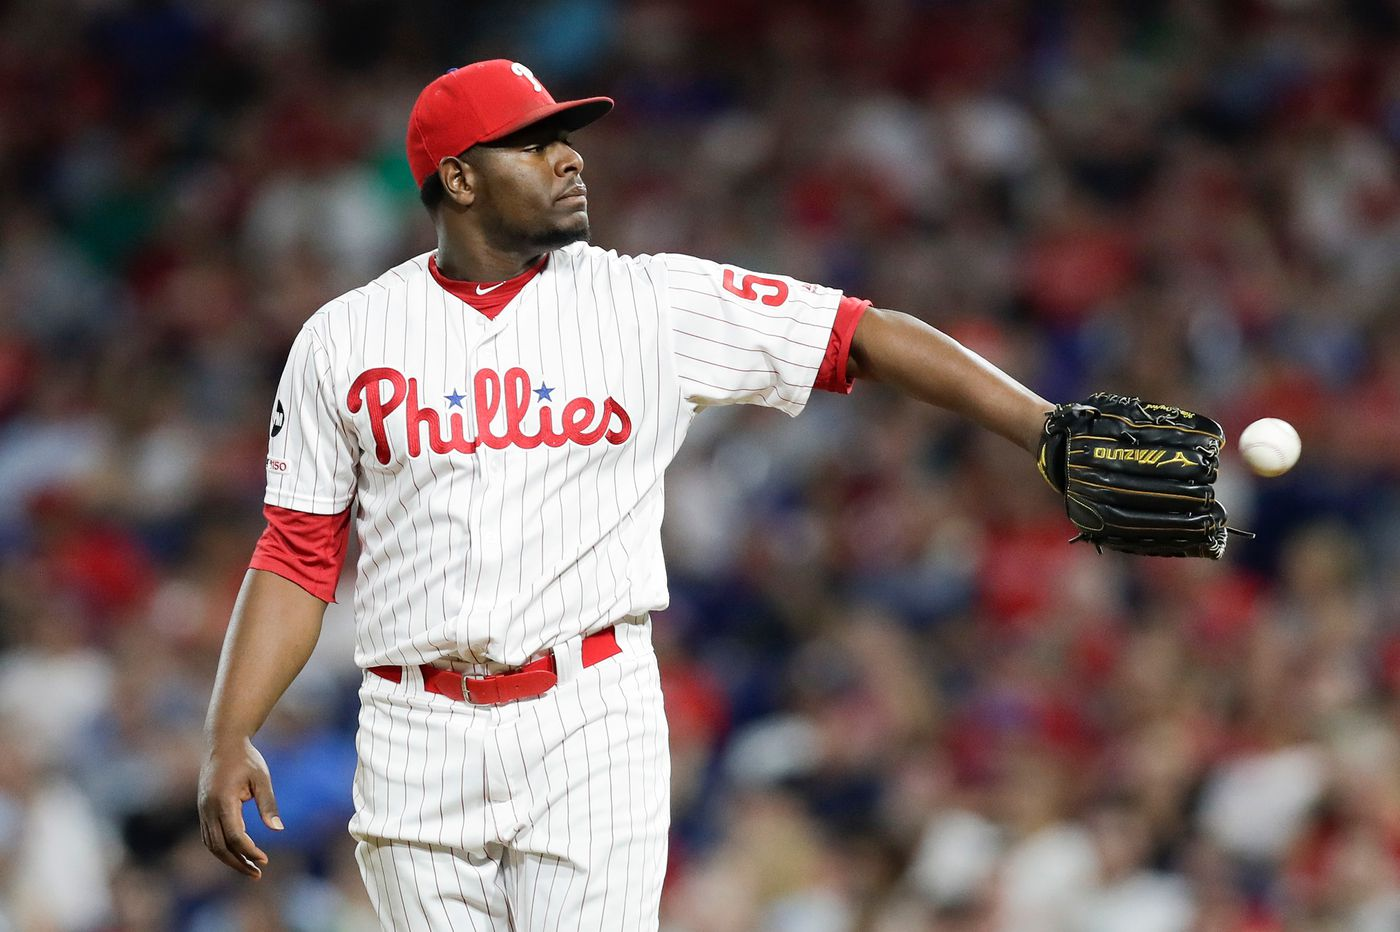 Before Bryce Harper's big moment, Phillies closer Hector Neris continued to struggle | Extra Innings